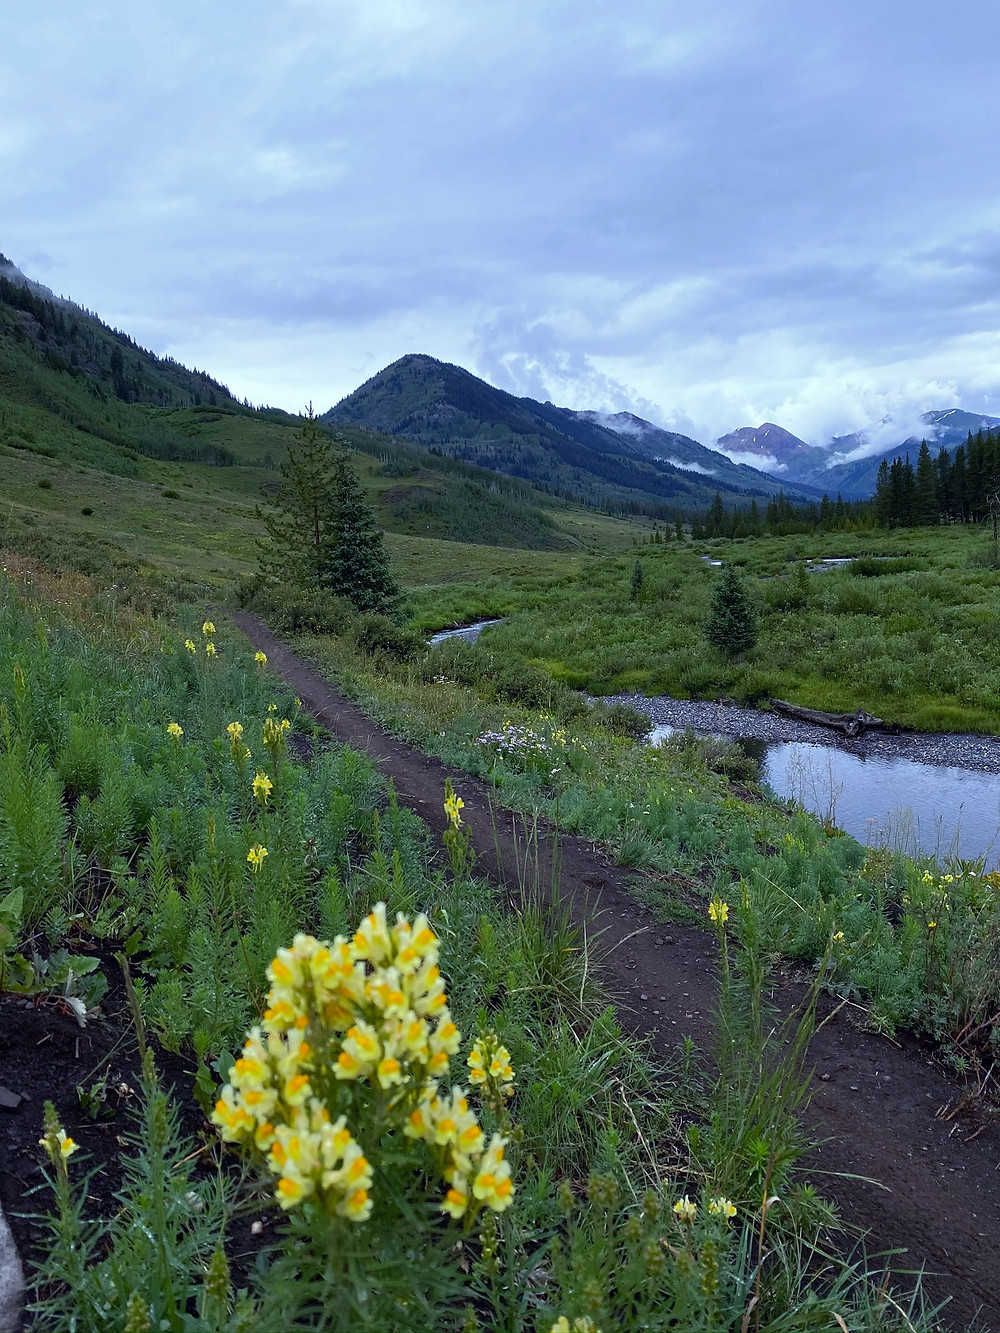 Trail following the Slate River in Crested Butte